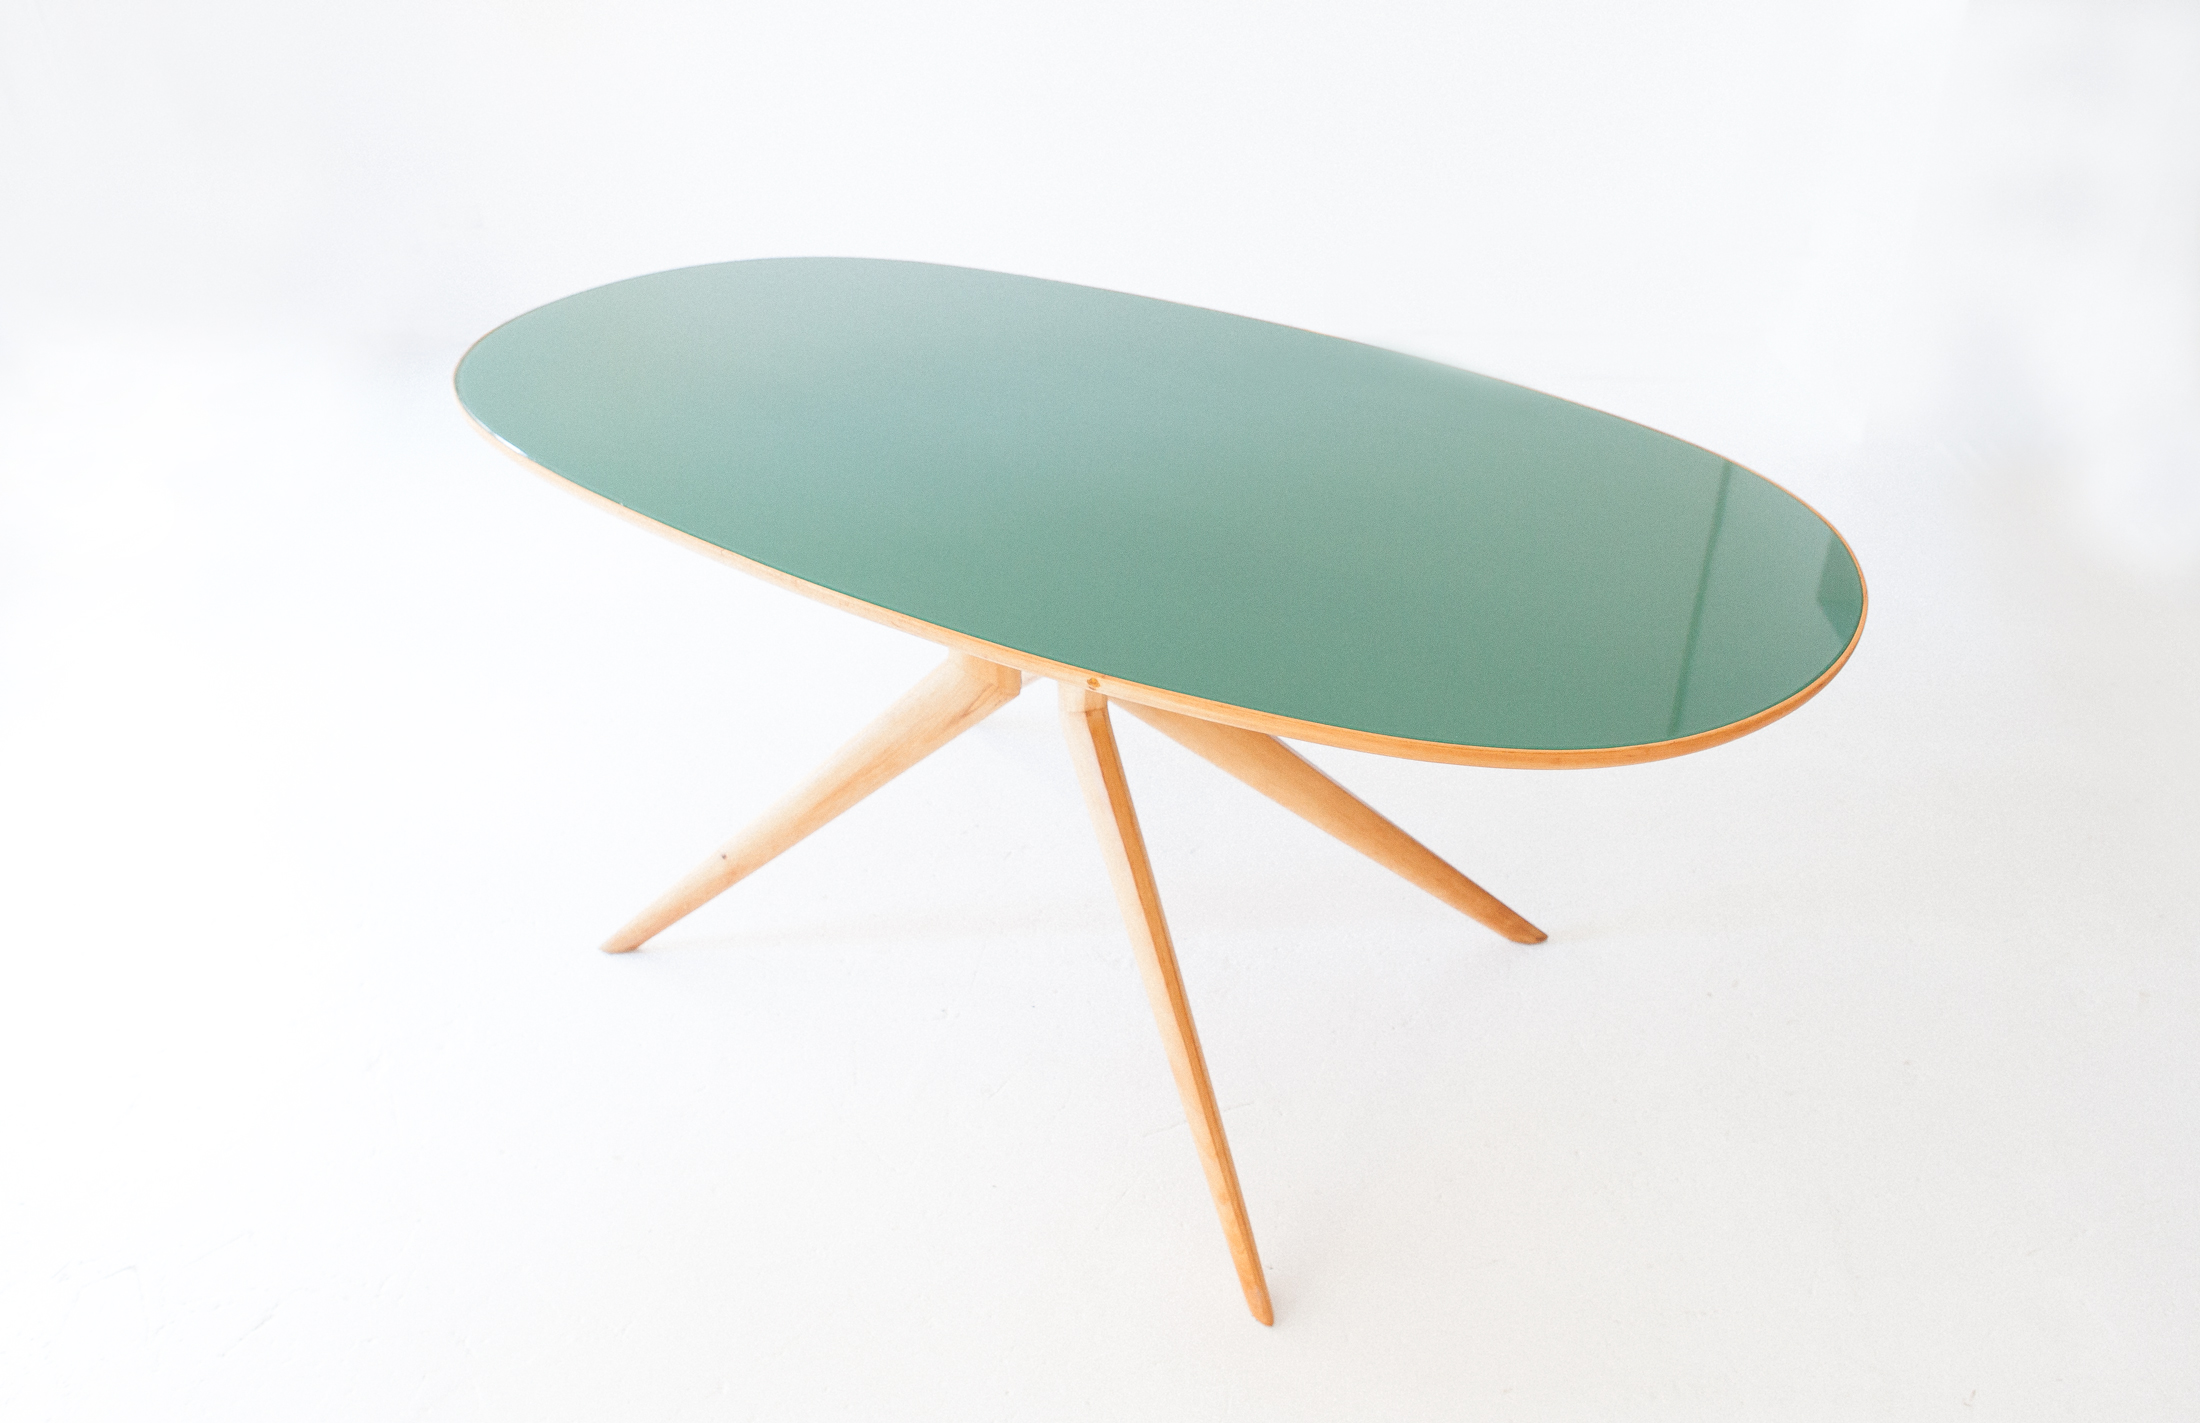 Elliptical-beech-light-green-dining-table-5